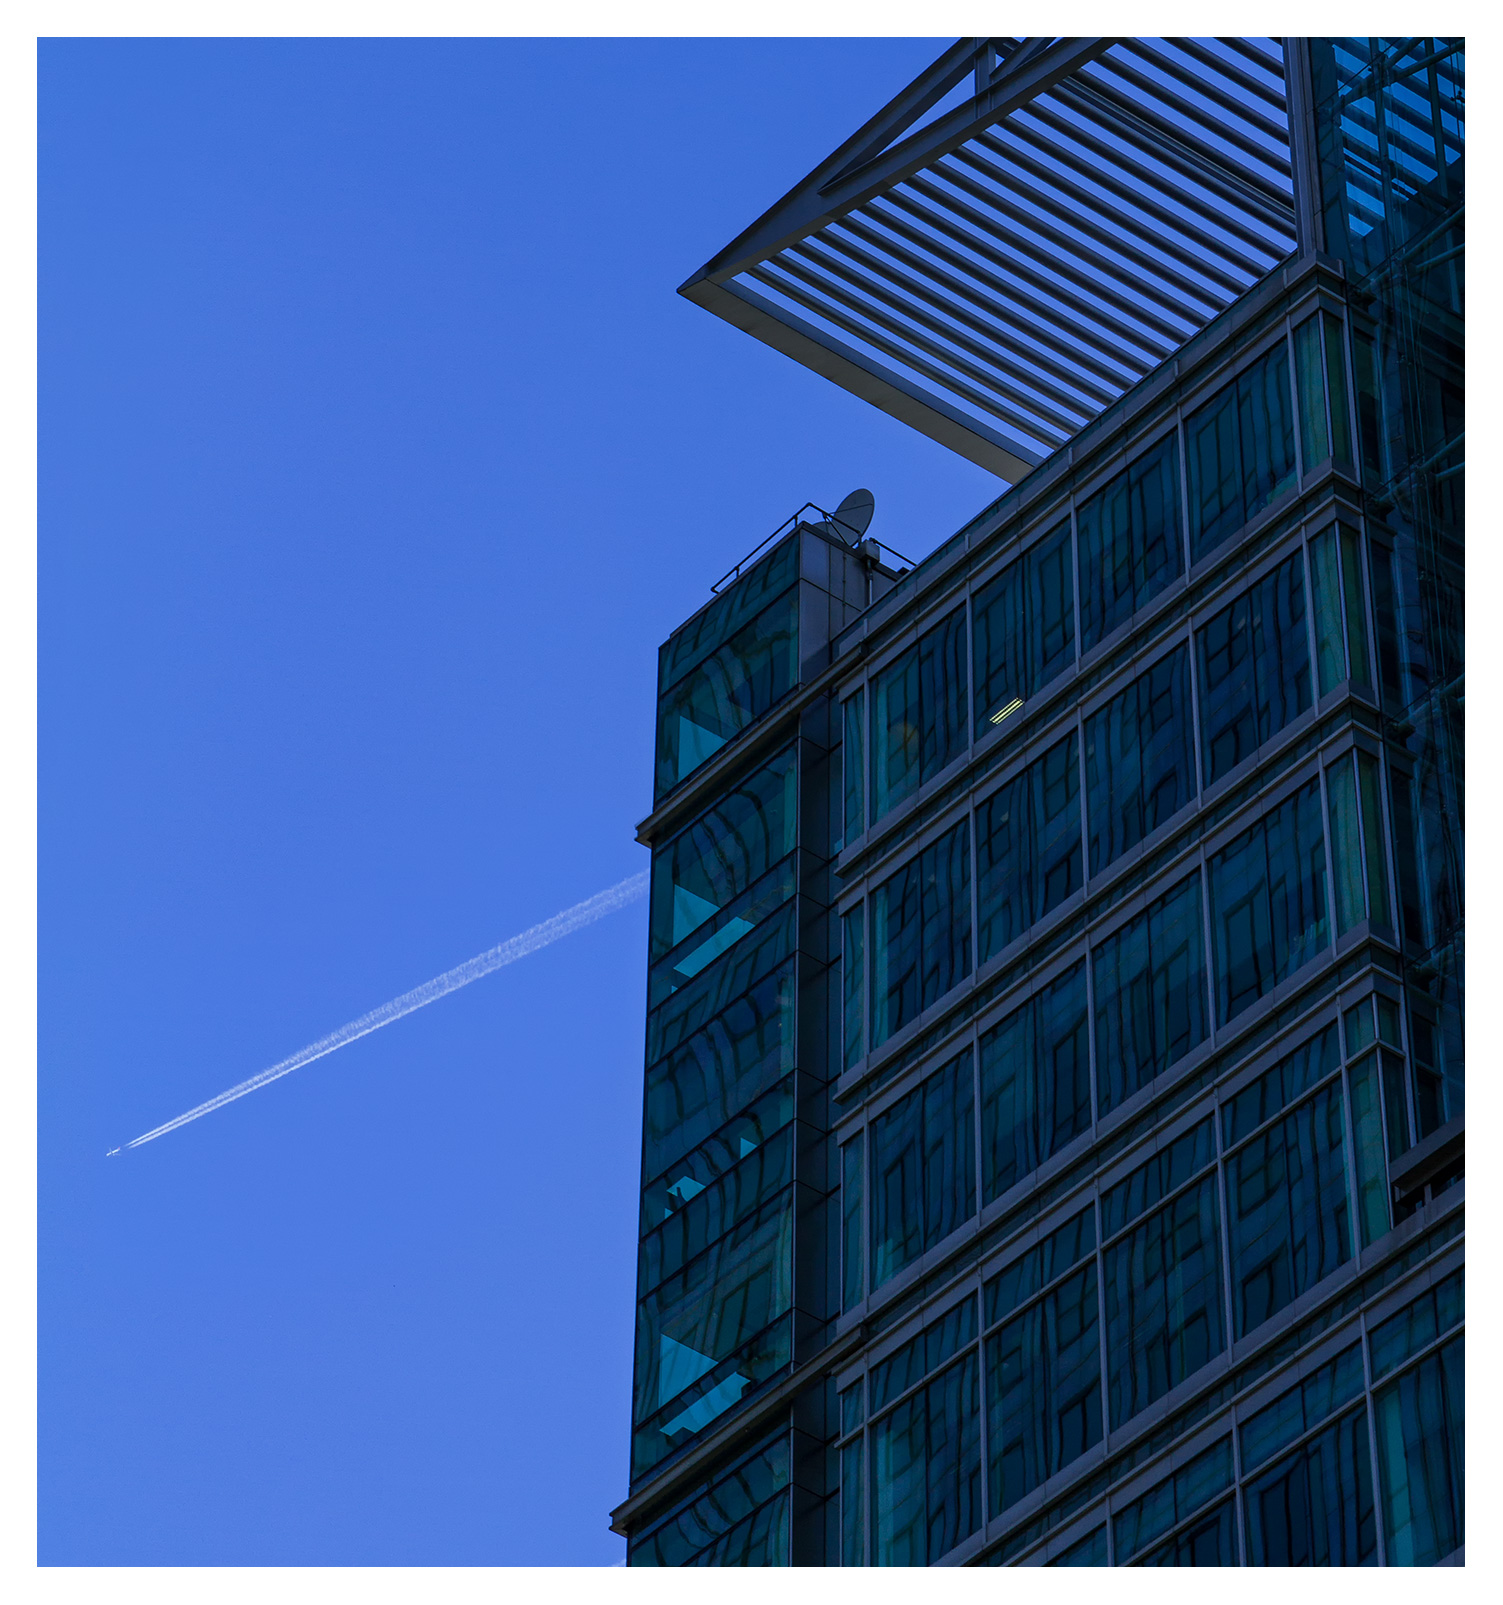 London Architecture, Bank of America, 5 Canada Square, Canary Wharf, London